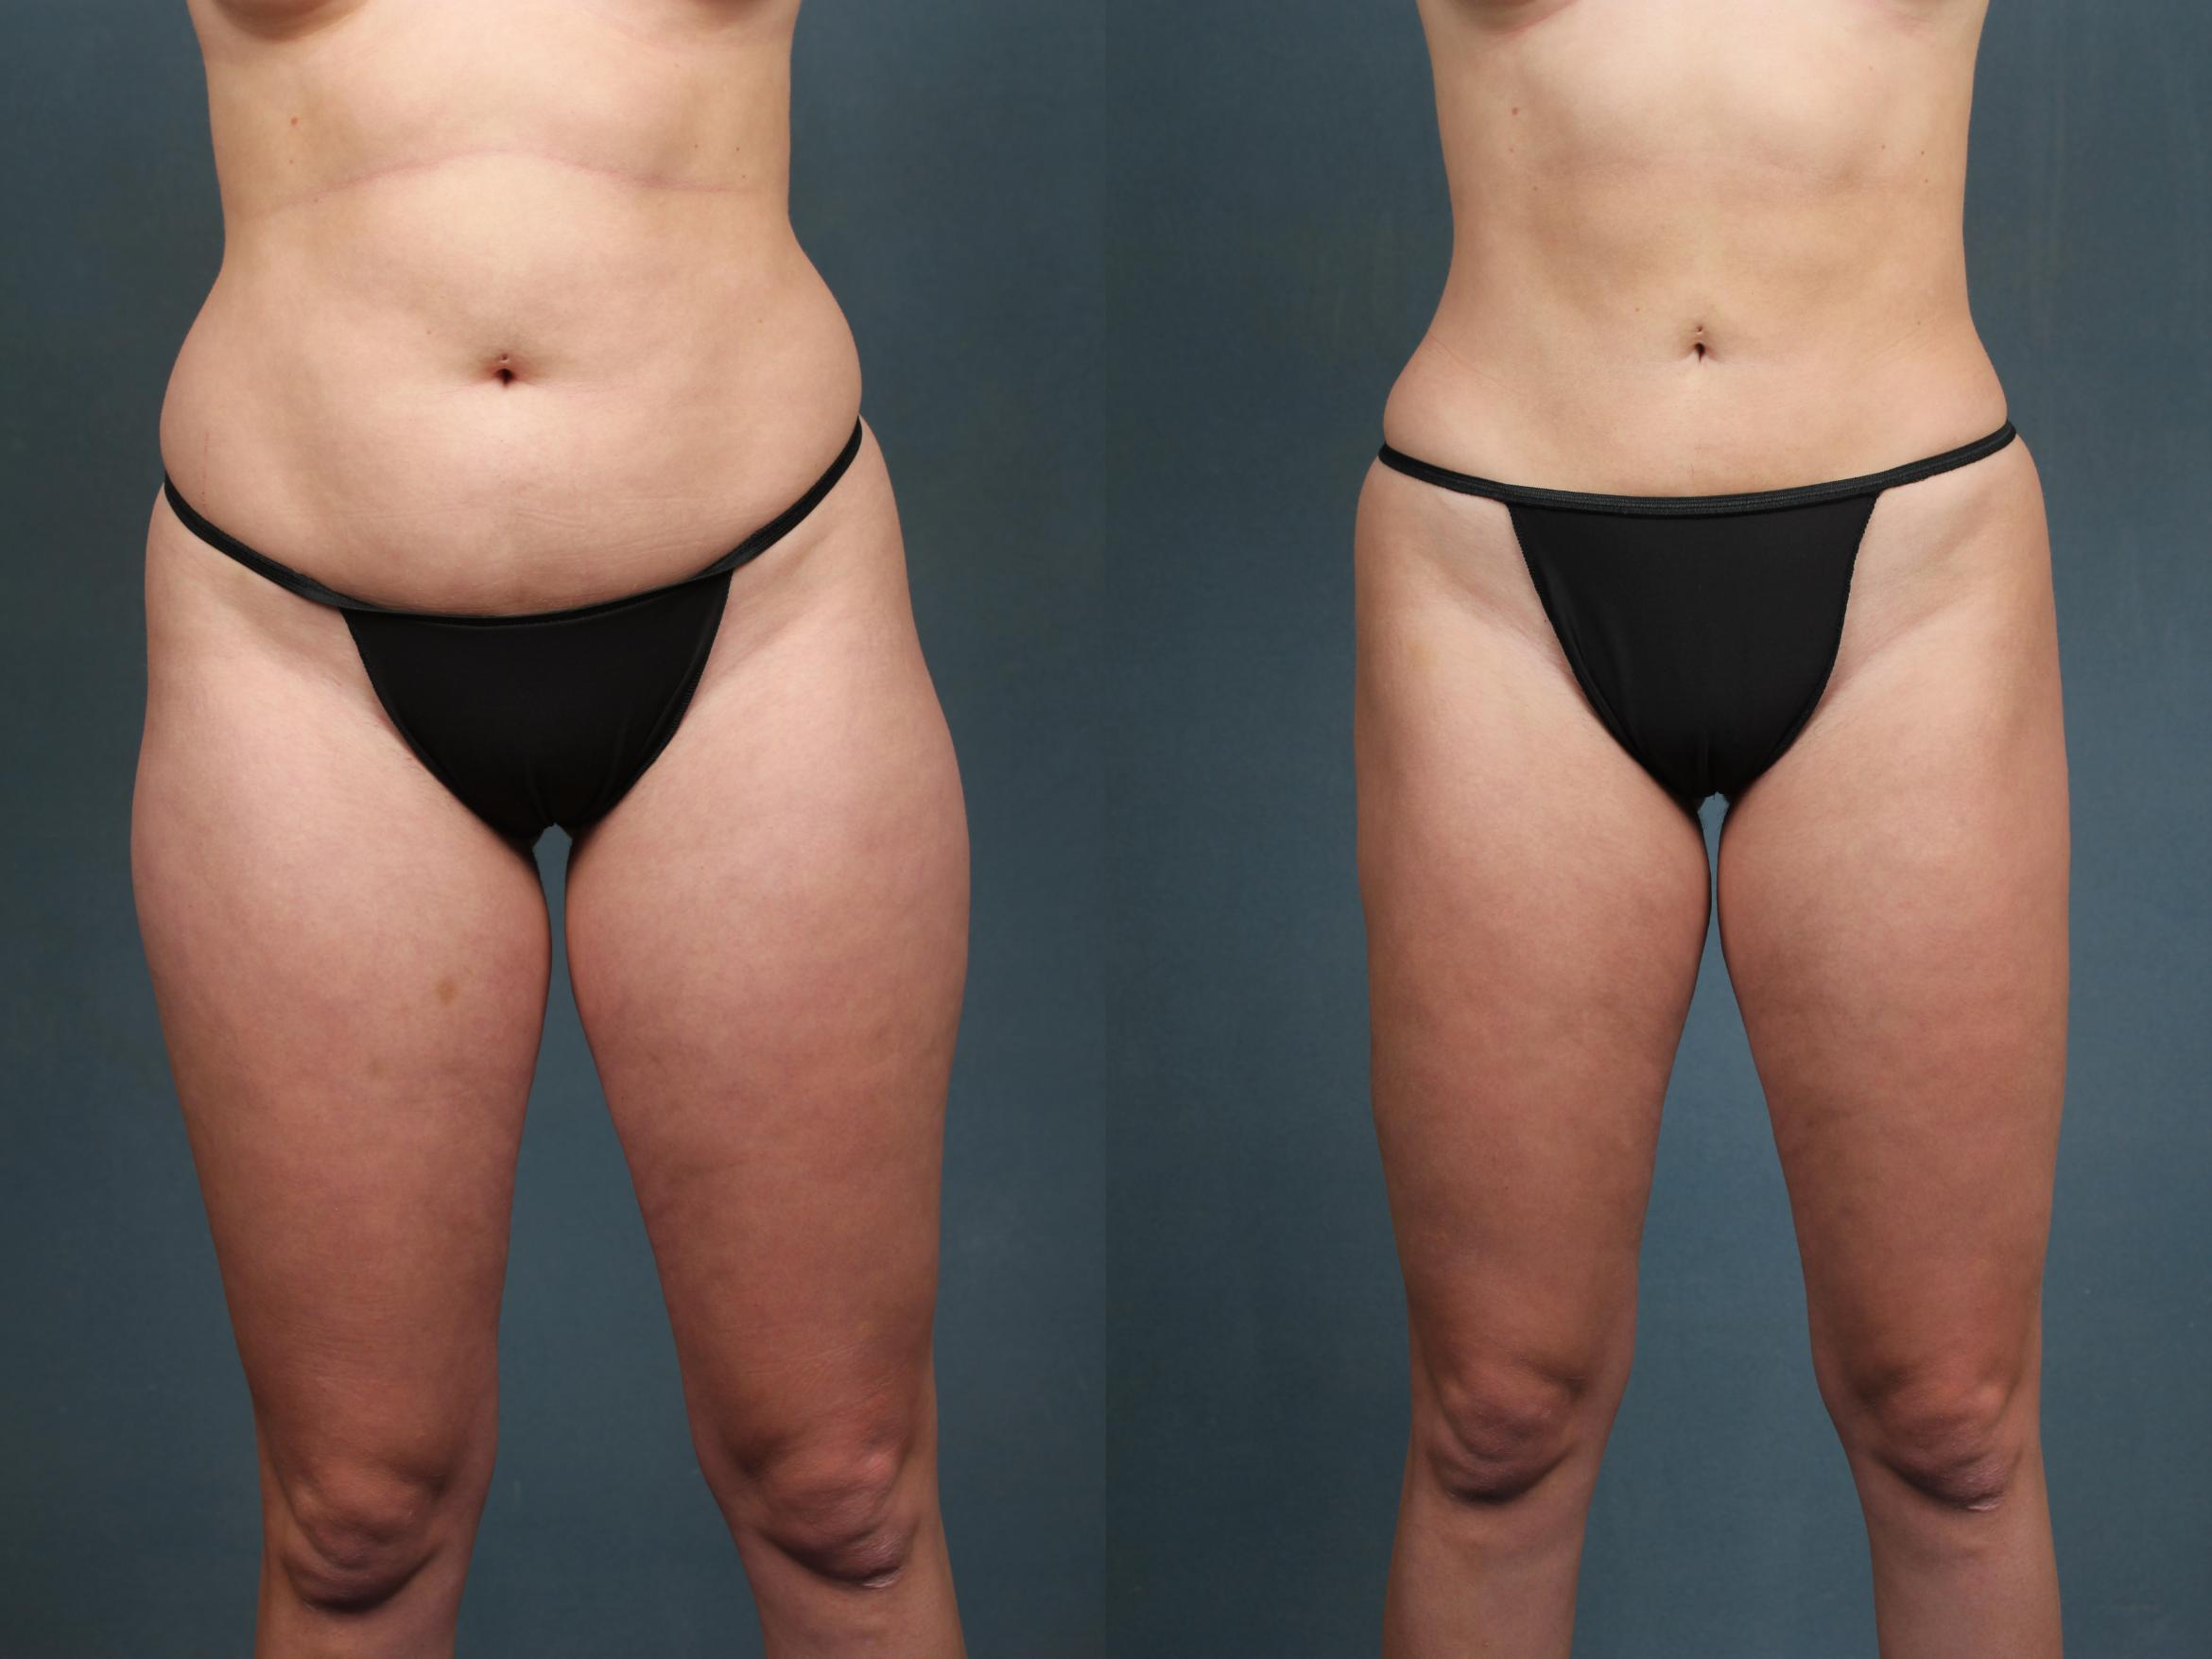 Liposuction In Louisville Lexington Ky Caloaesthetics Plastic Surgery Center